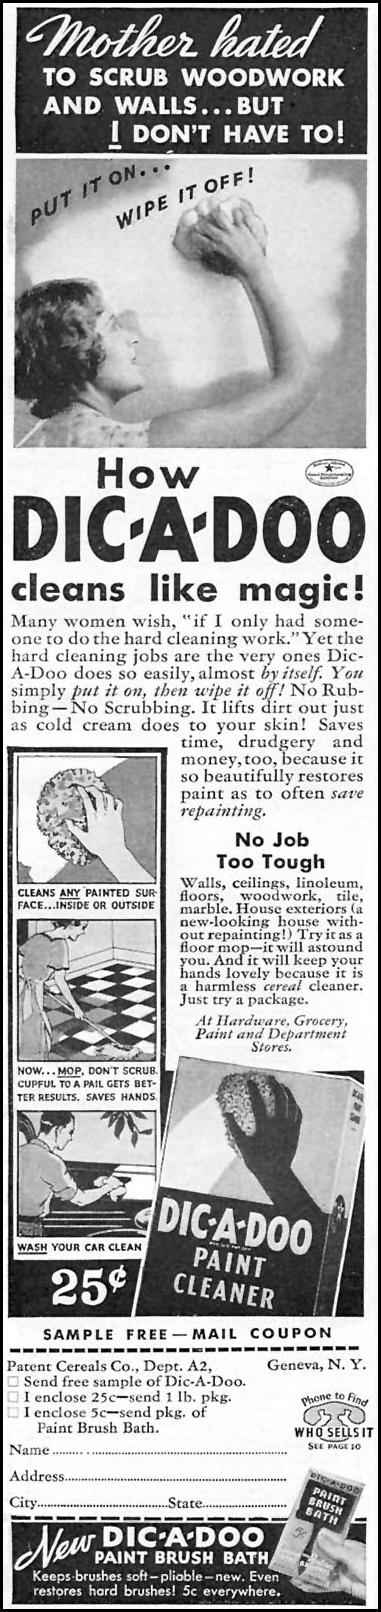 DIC-A-DOO PAINT CLEANER GOOD HOUSEKEEPING 04/01/1936